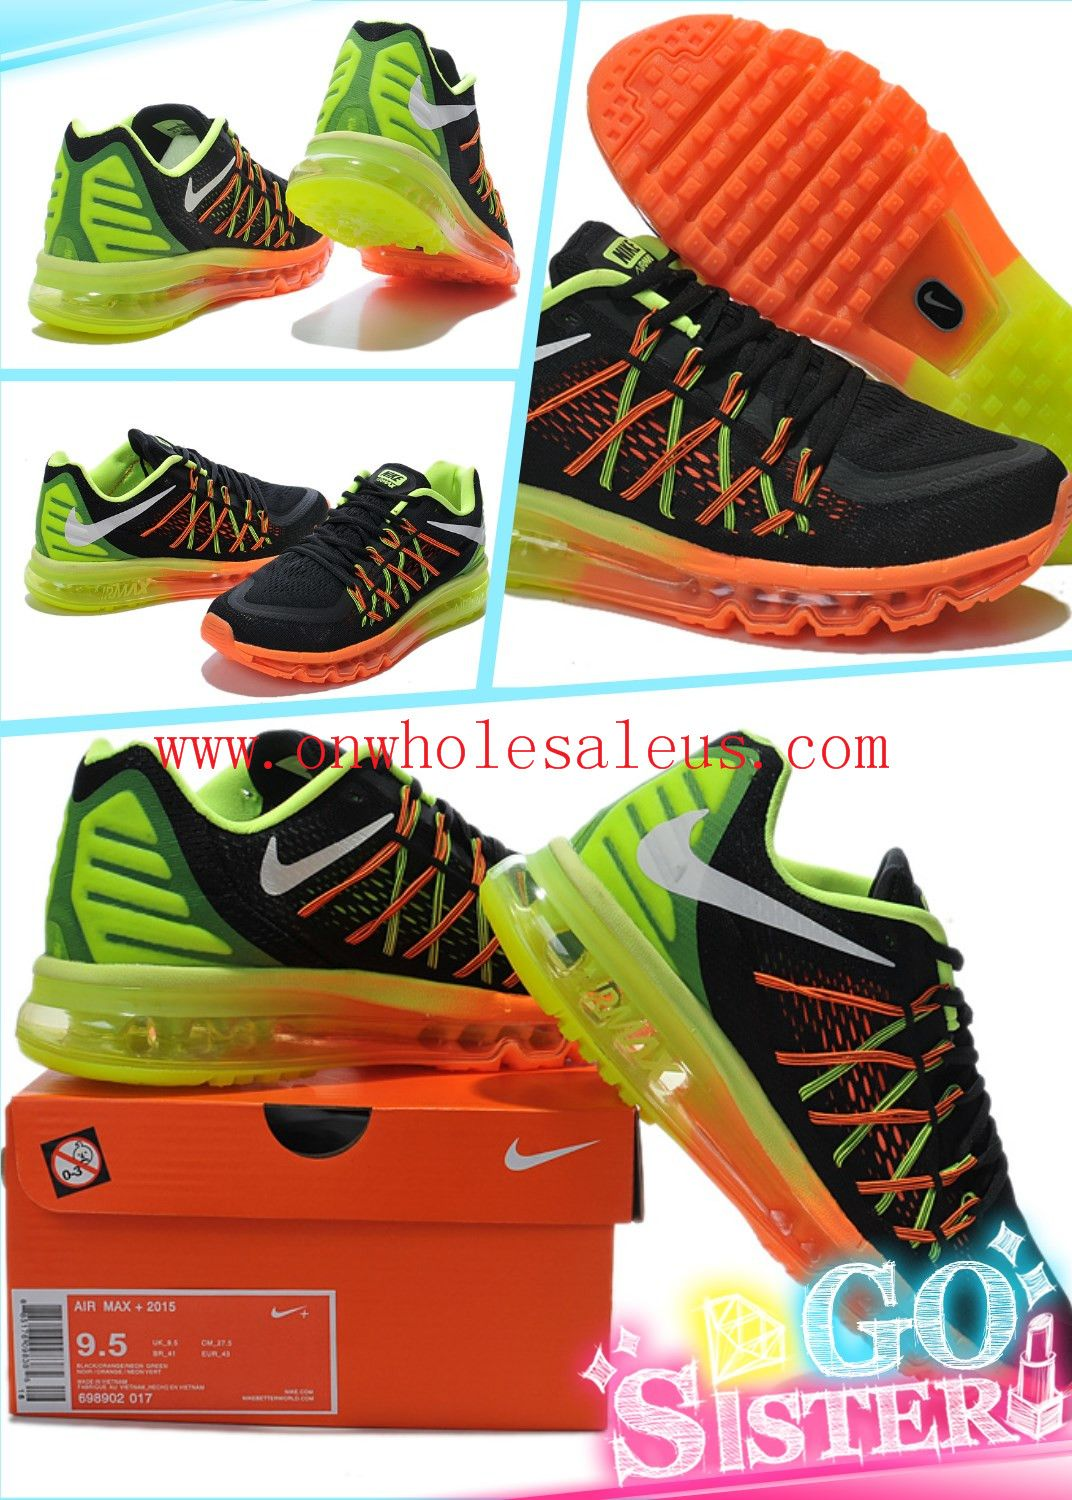 brand new 6ee82 c2f58 wholesale Cheap Nike Air Max 2015 Mens Orange black sneakers online  shopping  72 size 7-11